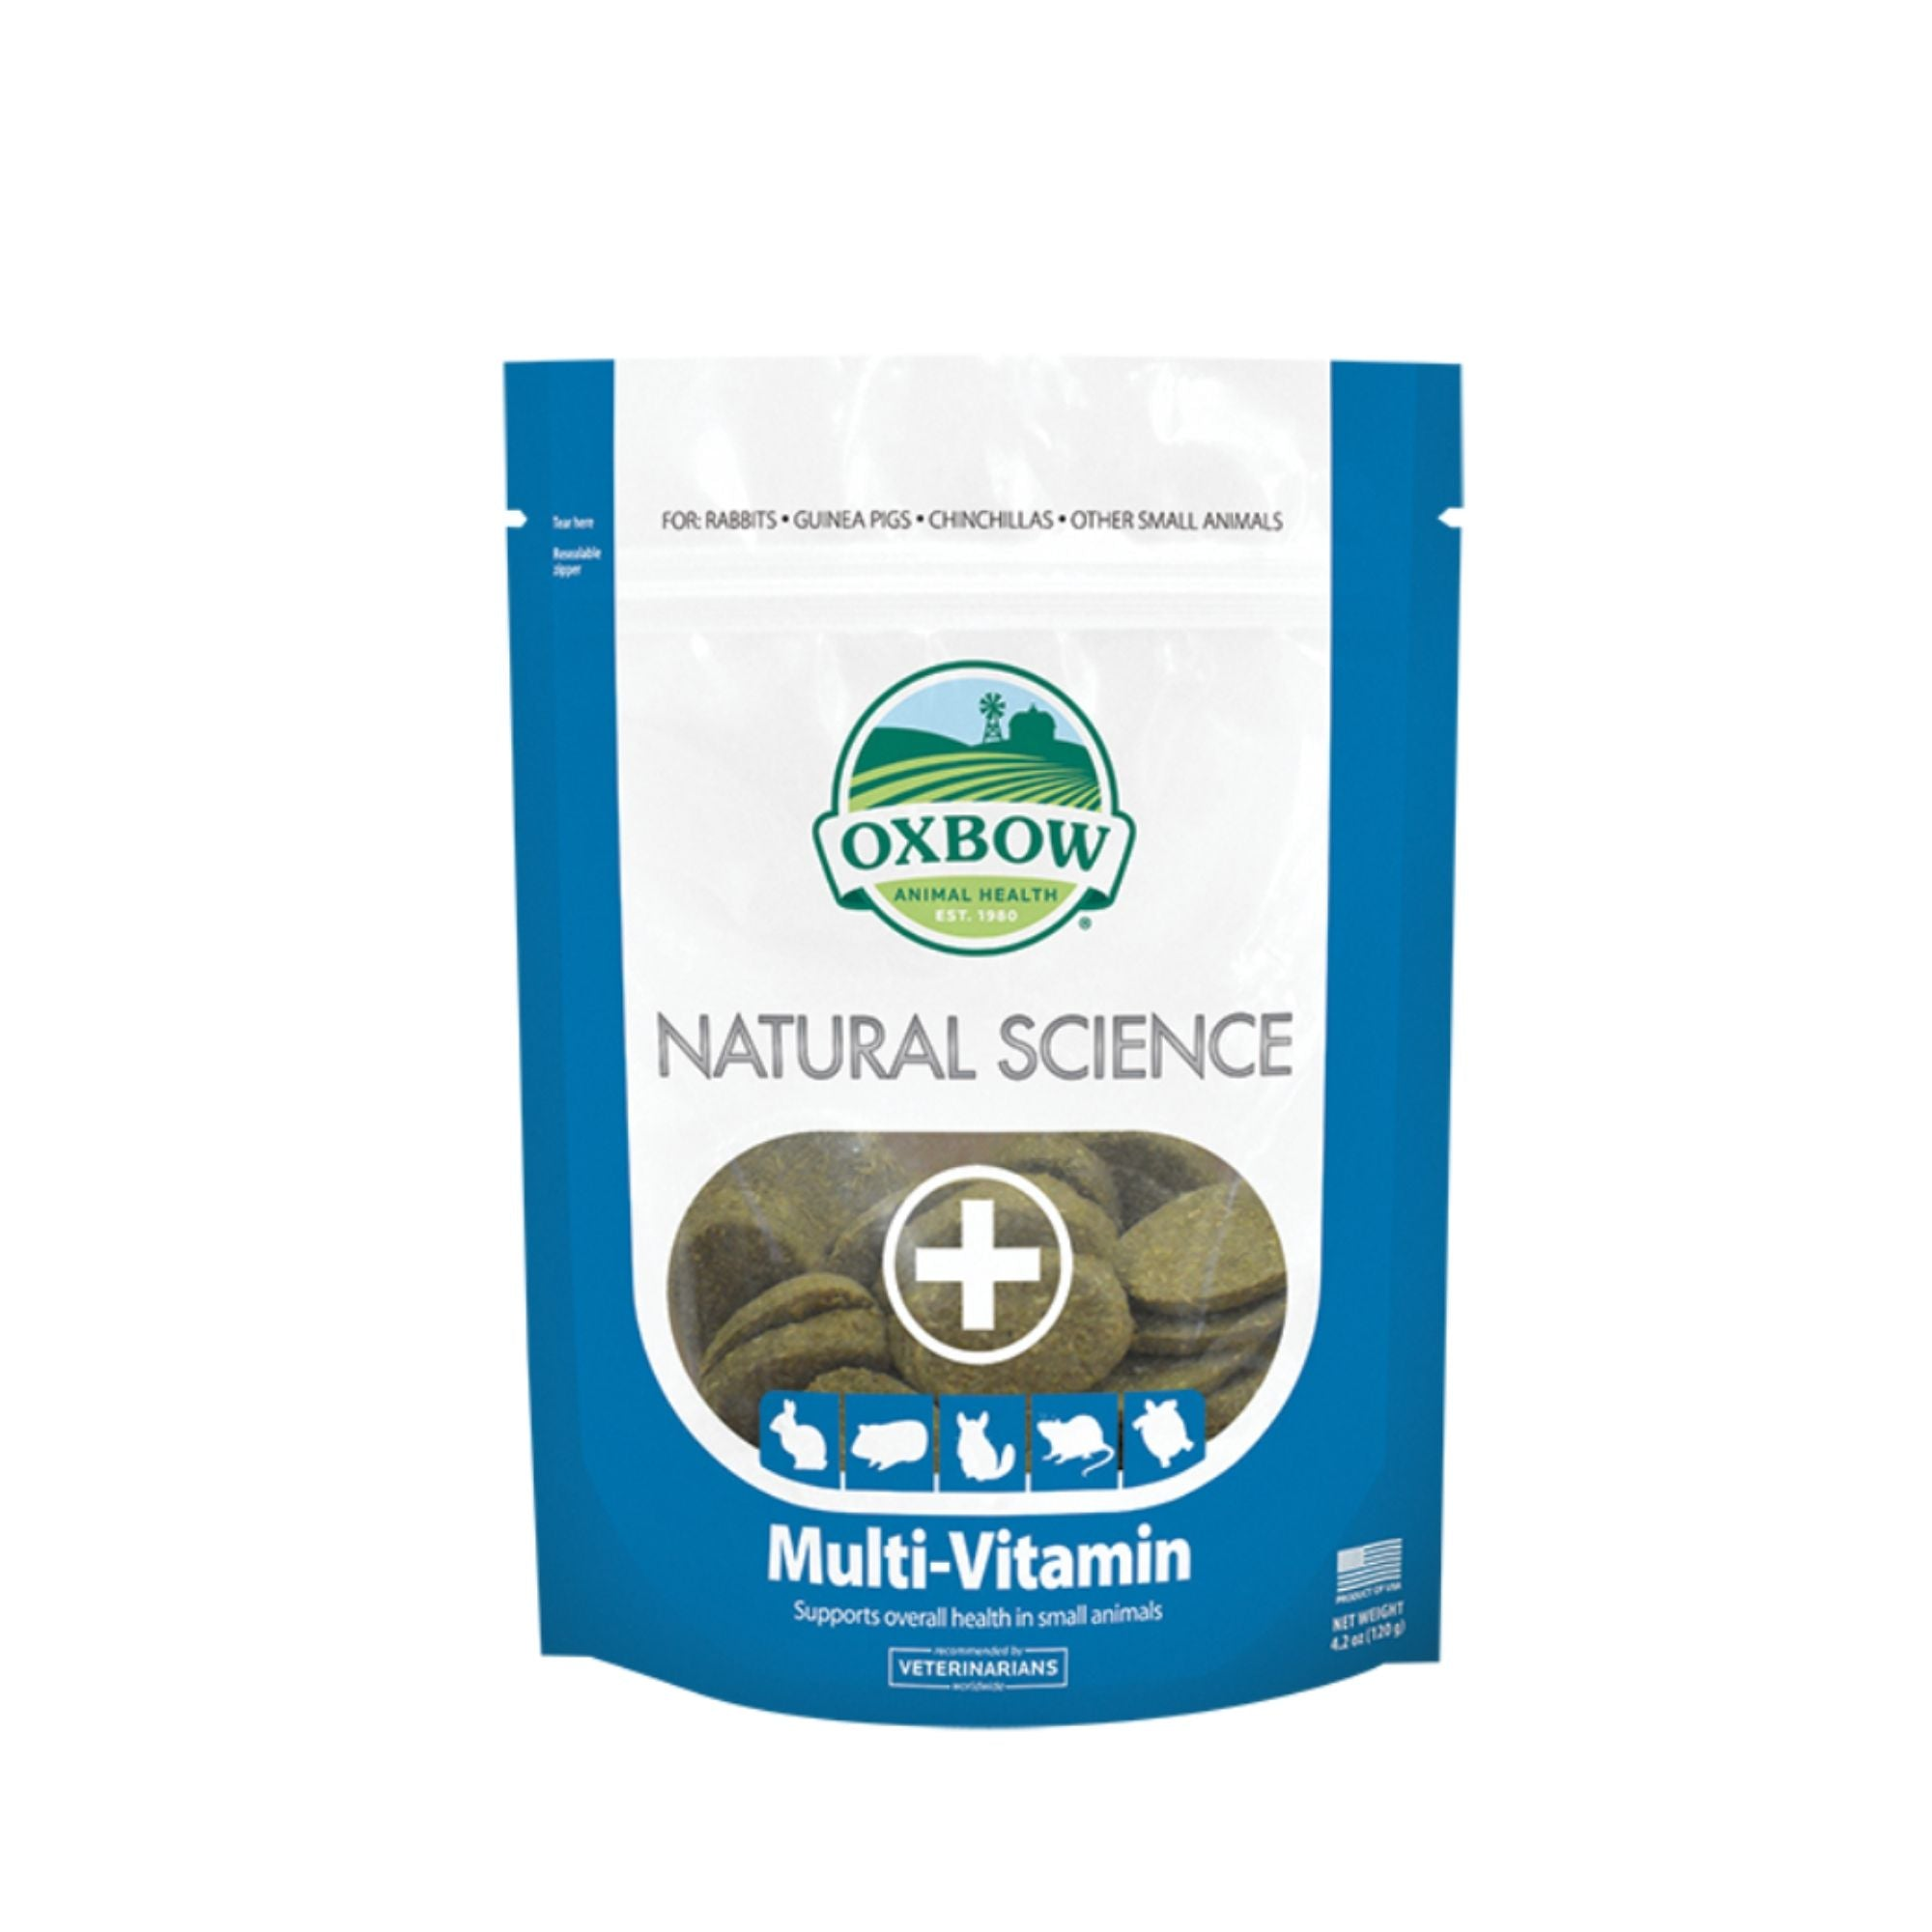 Oxbow Natural Science Multi-Vitamin for Small Animals | Barks & Bunnies